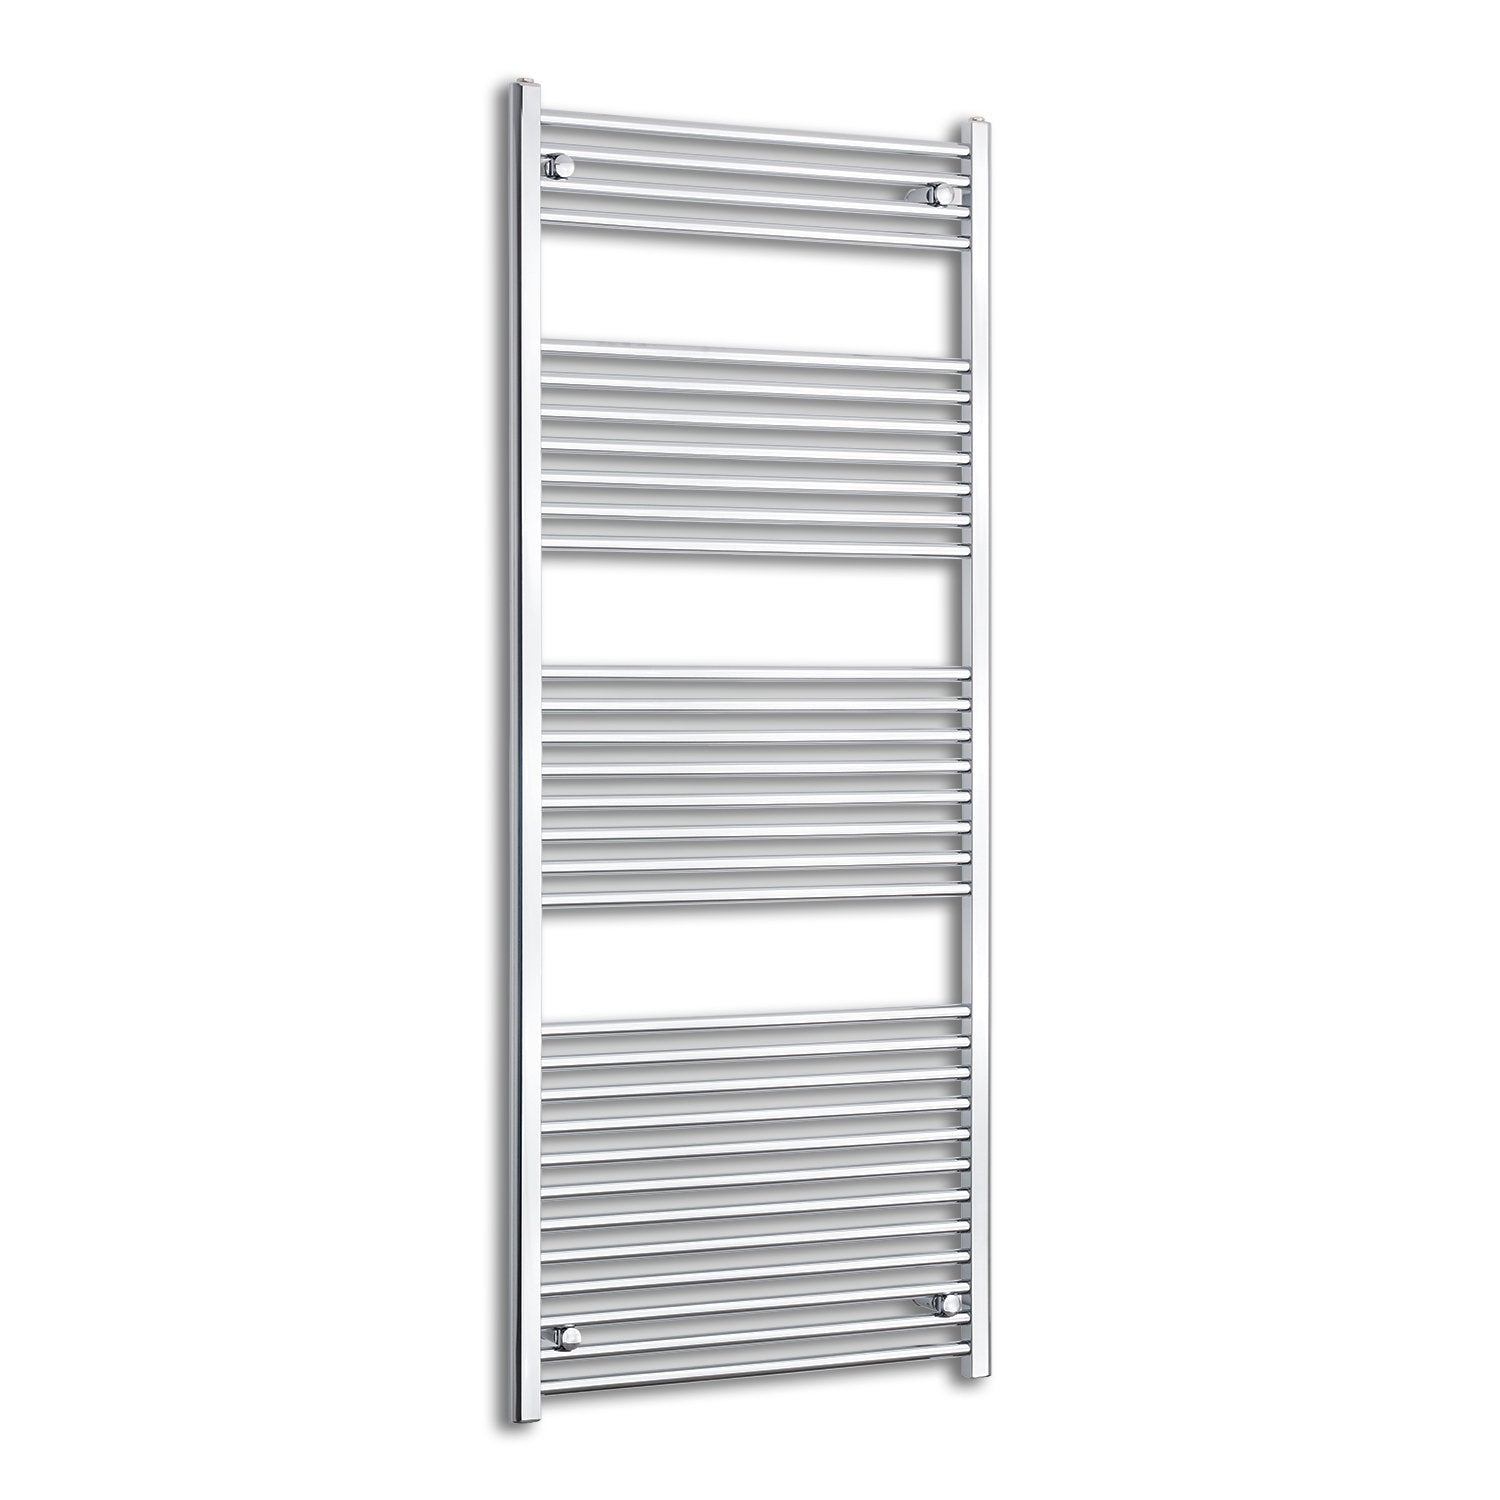 800mm Wide 1800mm High Flat Chrome Heated Towel Rail Radiator HTR,Towel Rail Only